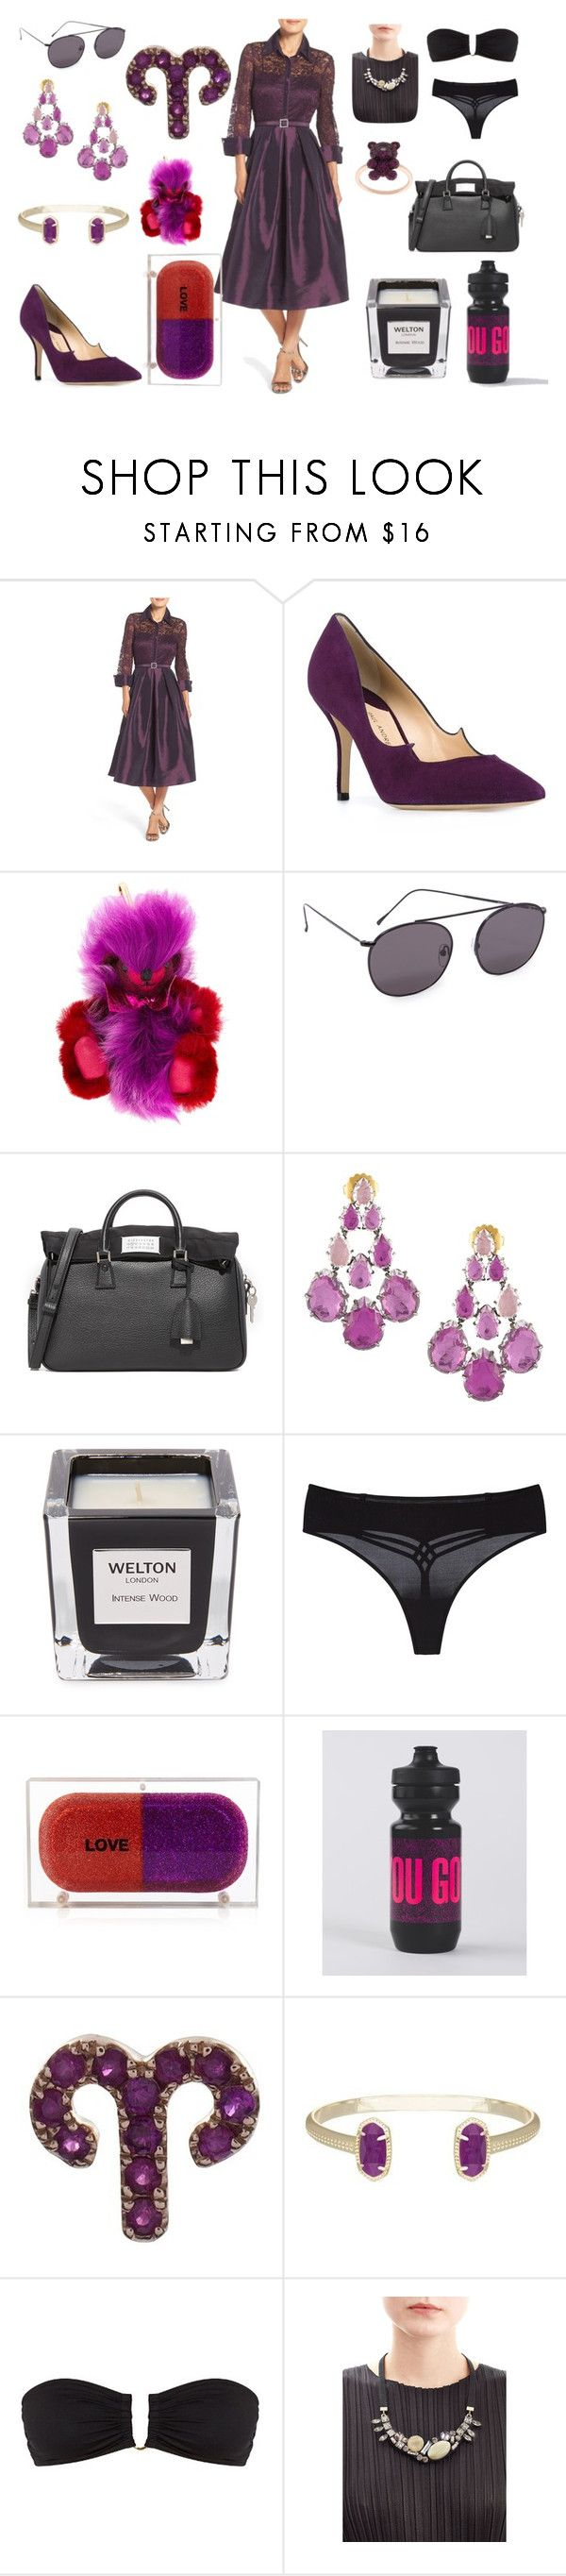 """""""Fashion festival"""" by camry-brynn ❤ liked on Polyvore featuring Eliza J, Paul Andrew, Burberry, Illesteva, Maison Margiela, Welton London, Marlies Dekkers, Sarah's Bag, lululemon and Loquet"""